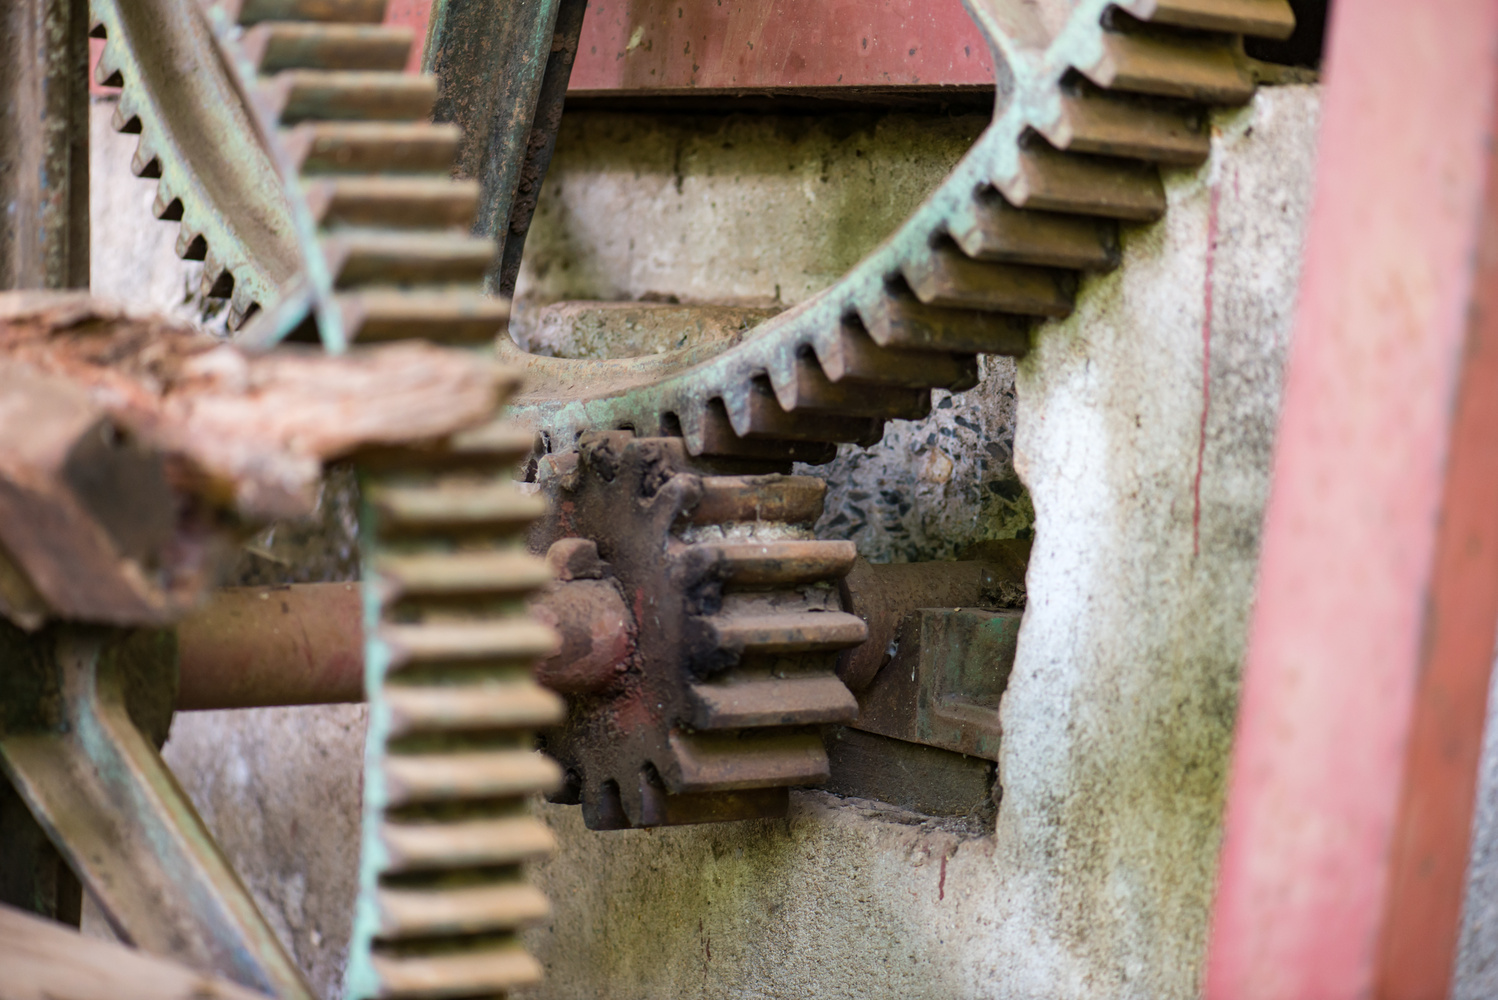 Old Gears by Ryan Rees